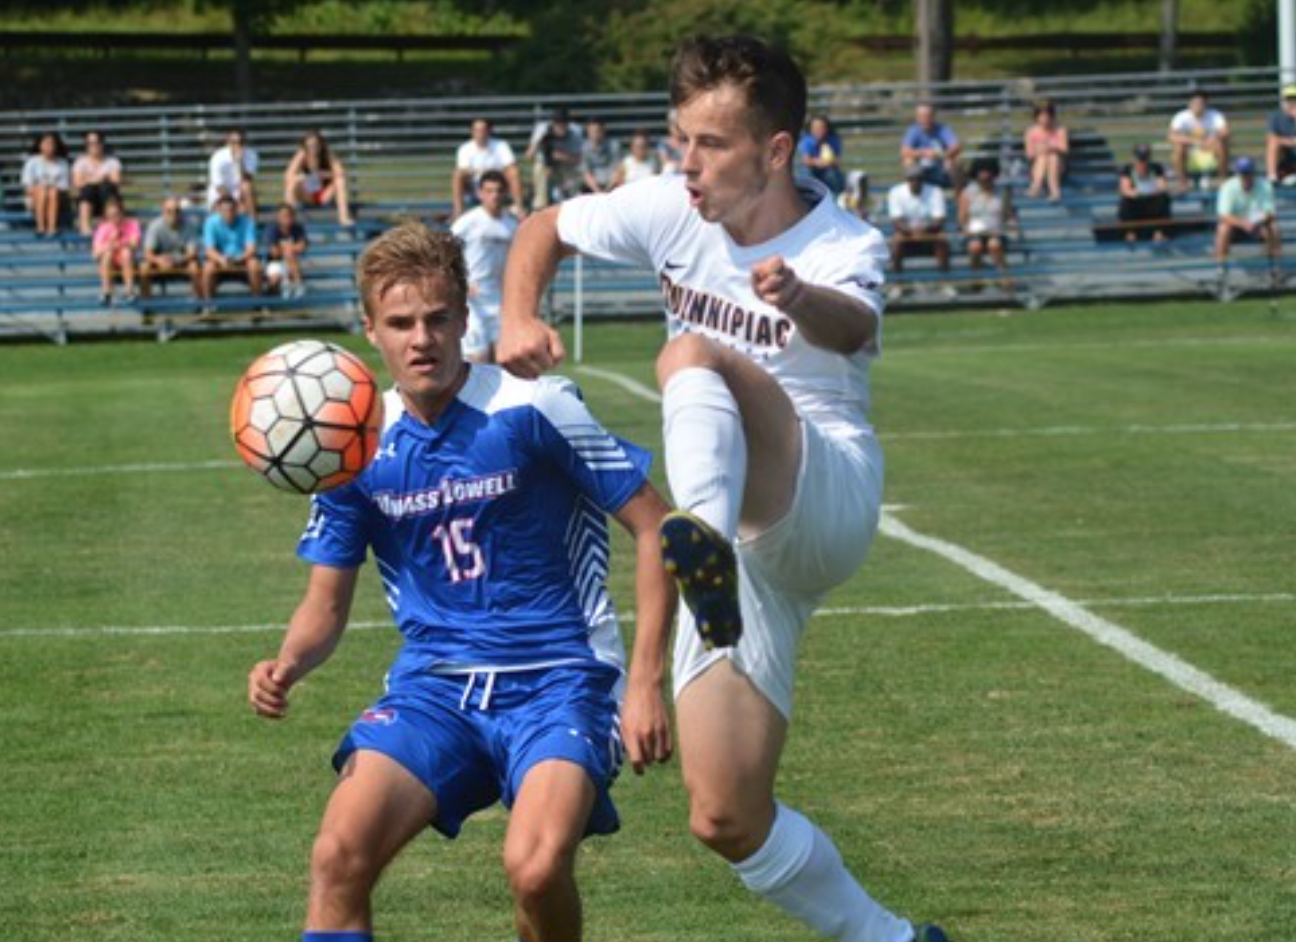 Quinnipiac men's soccer's streak halted at two, losses to UMass-Lowell at home